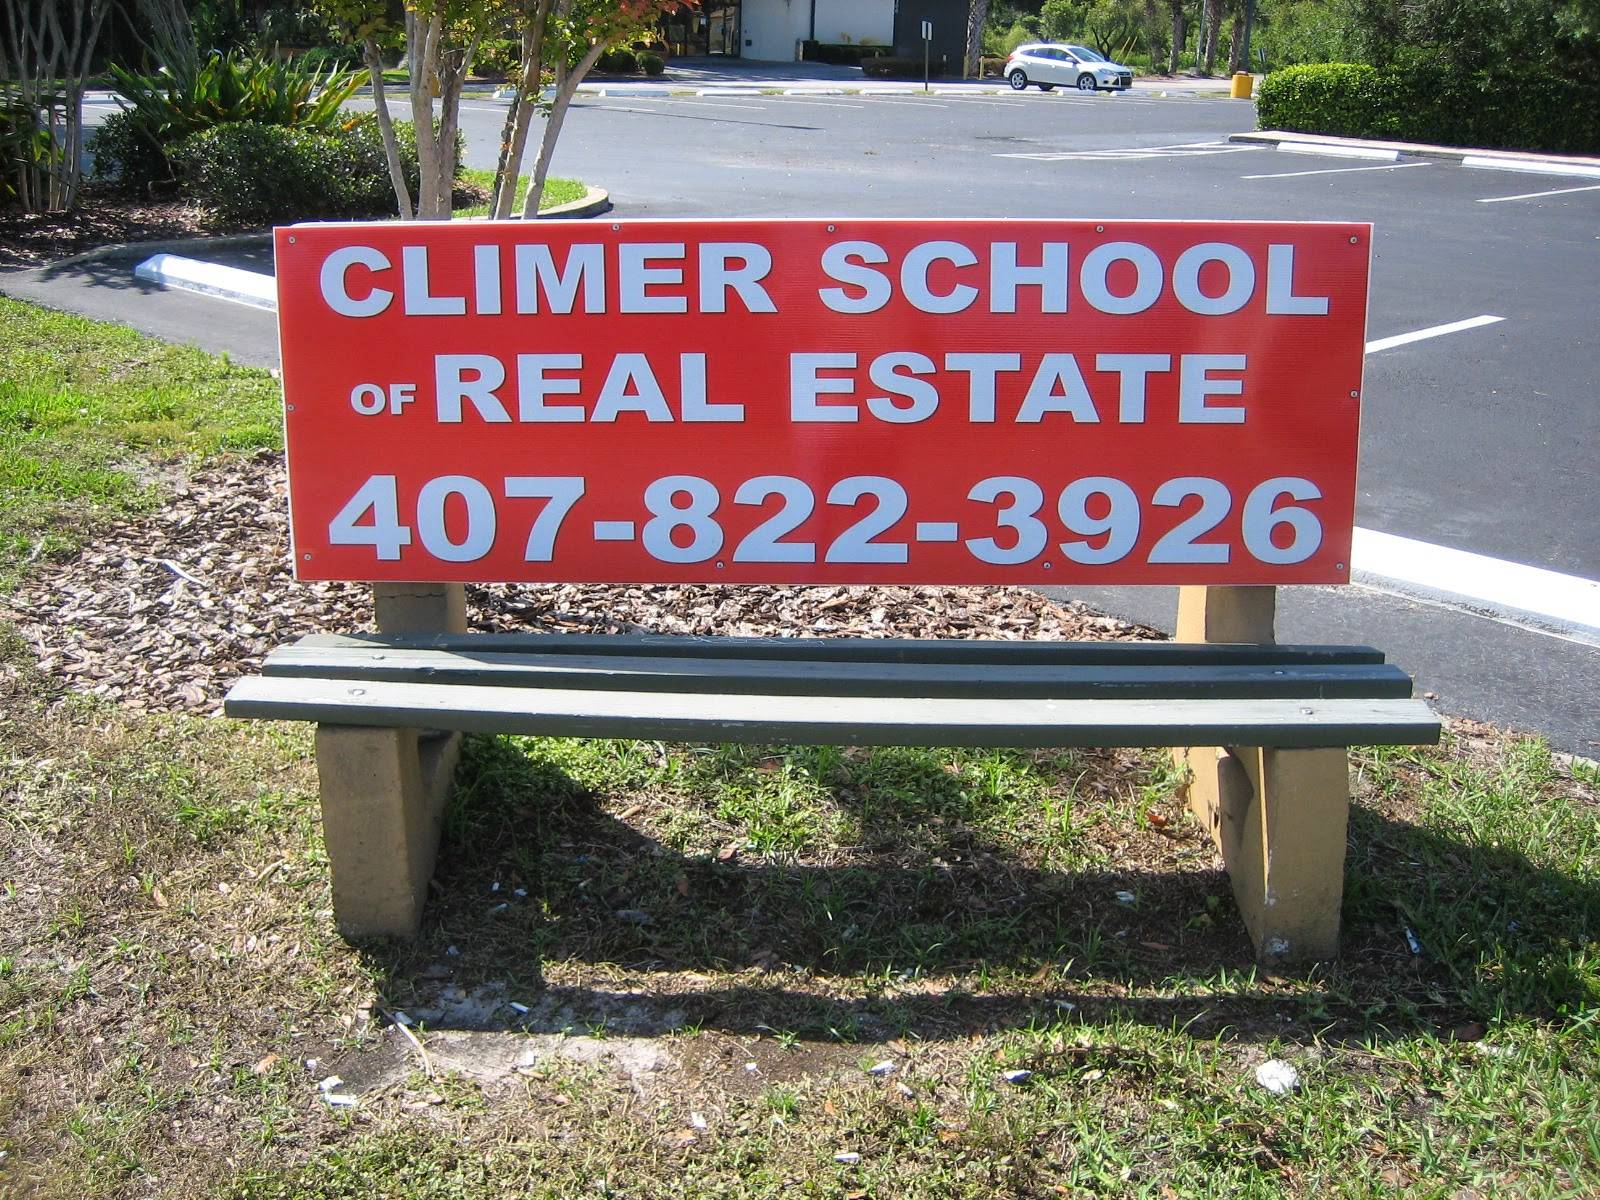 The-Climer-School-of-Real-Estate-the-Best-Real-Estate-School-in ...